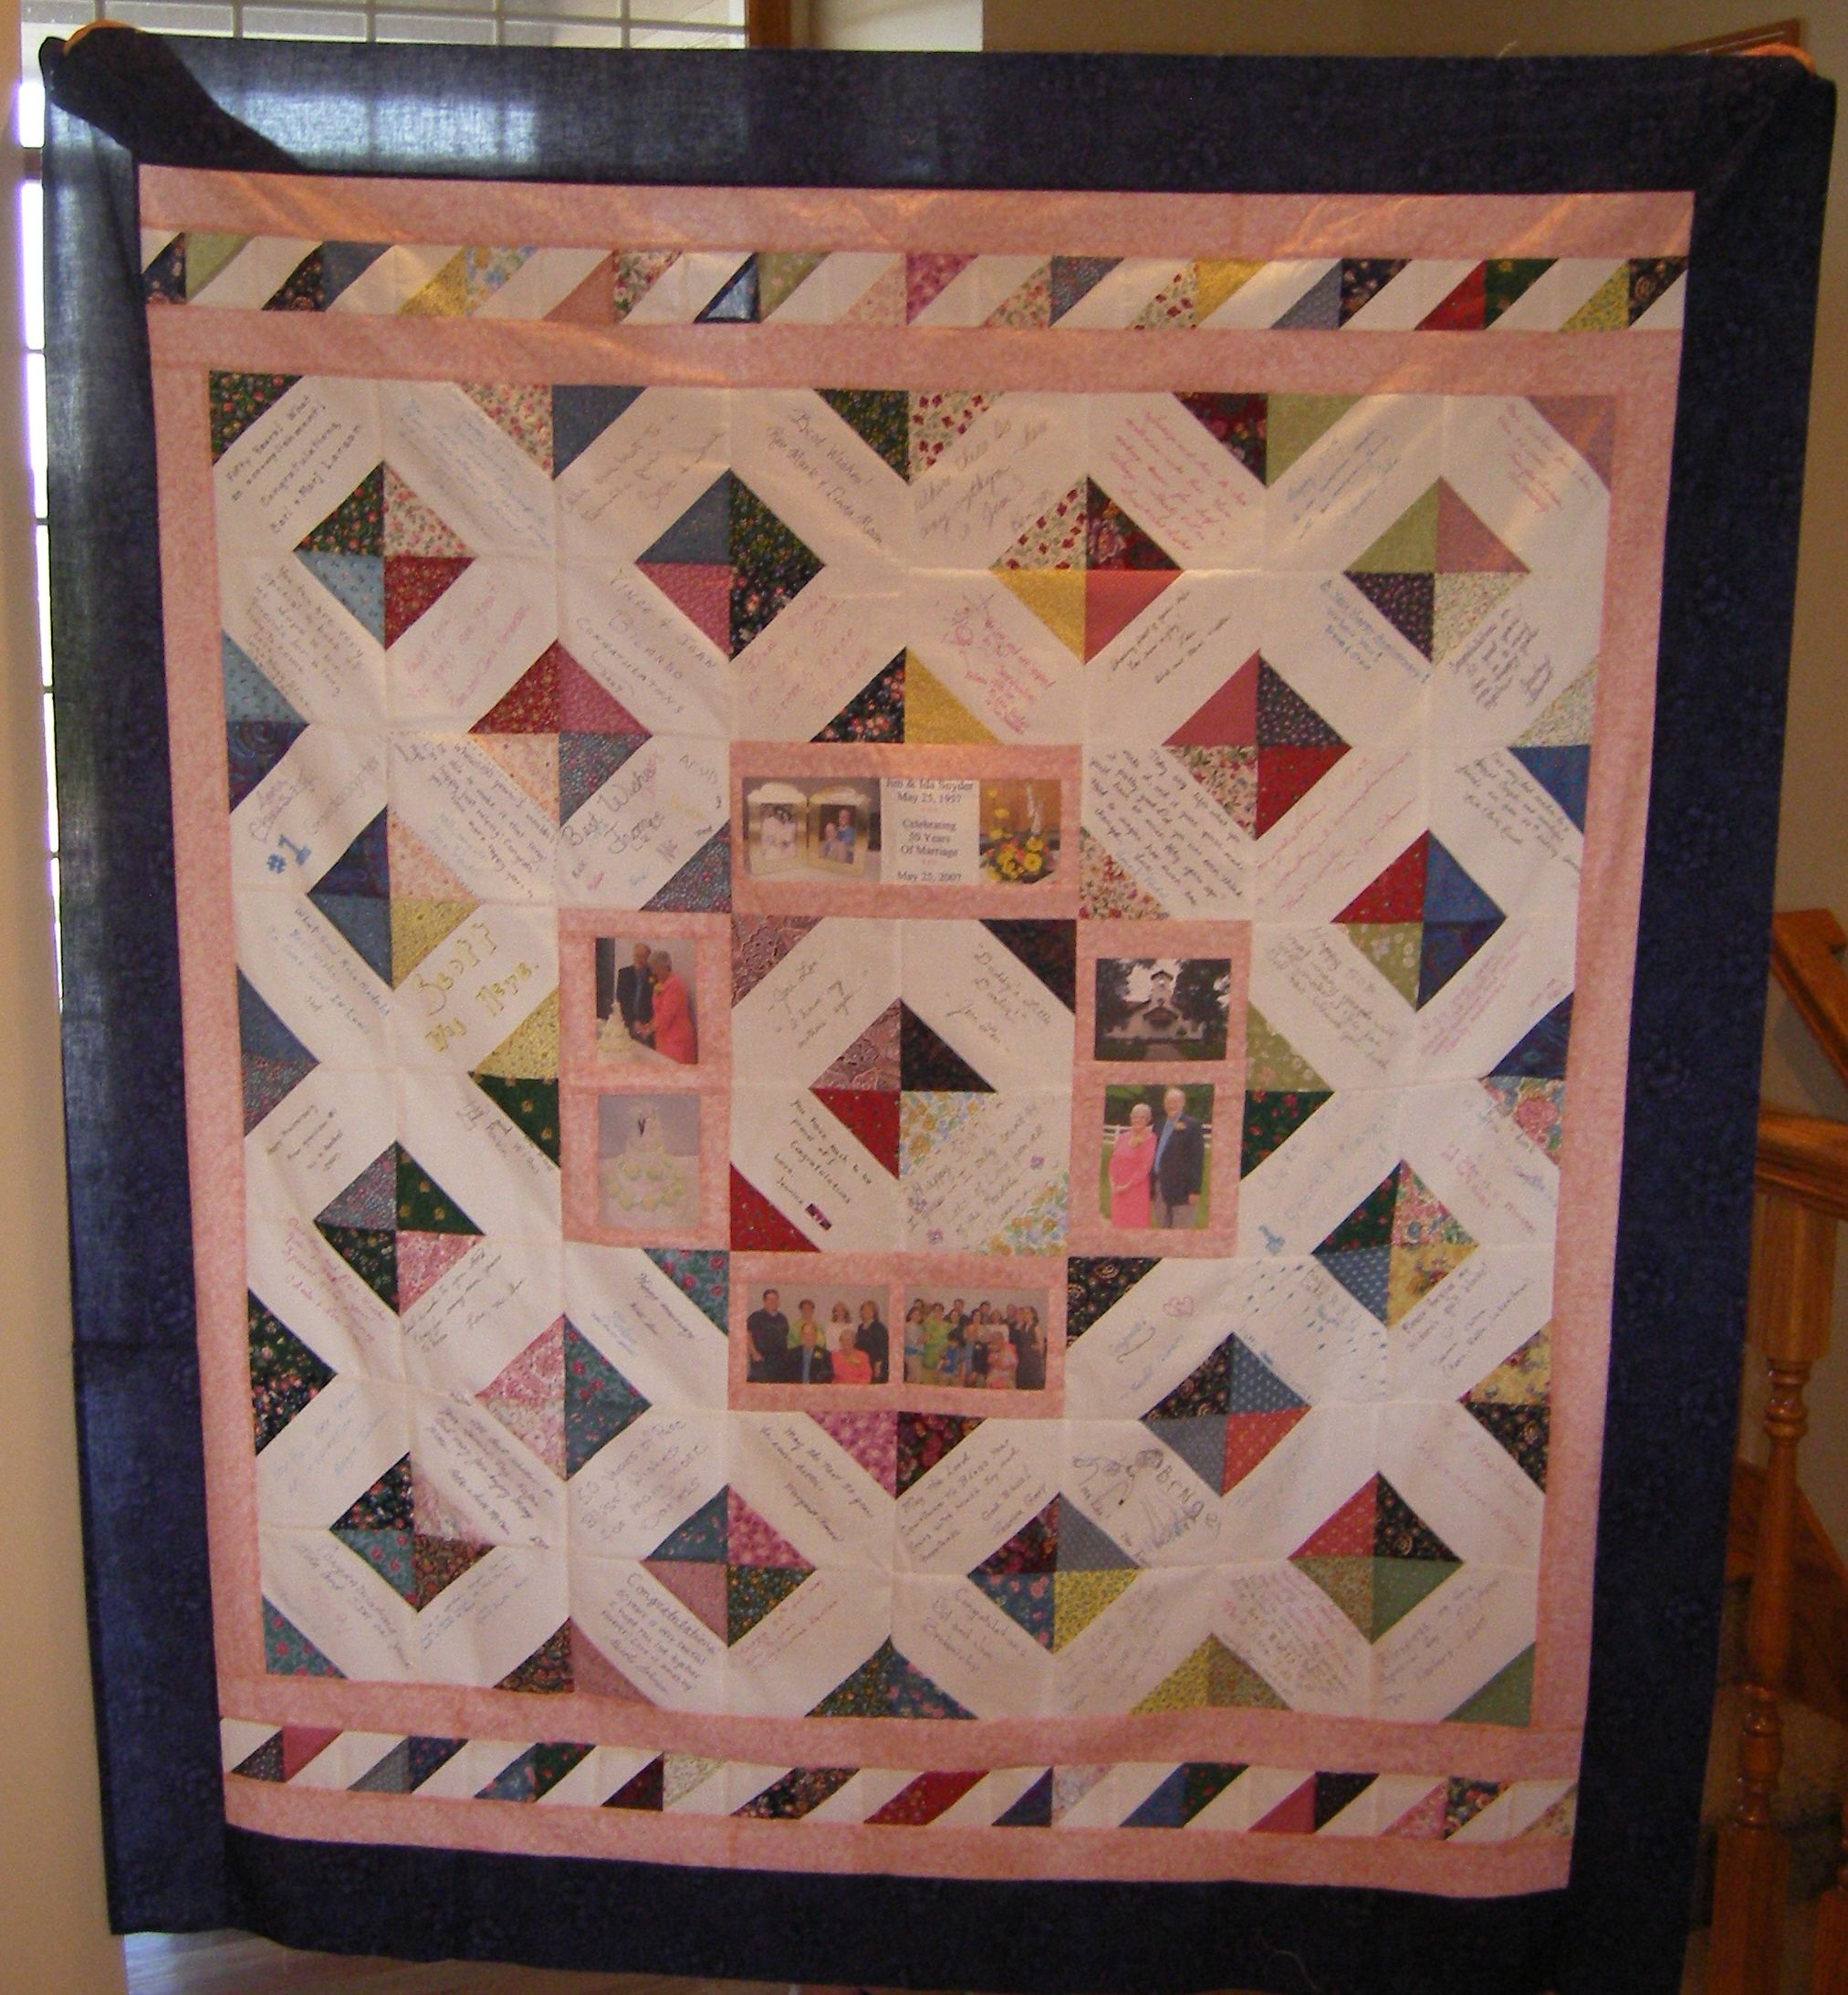 flag day crafts 7206 annvquilt002 jpg 2 025 215 2 186 pixels quilting 2025